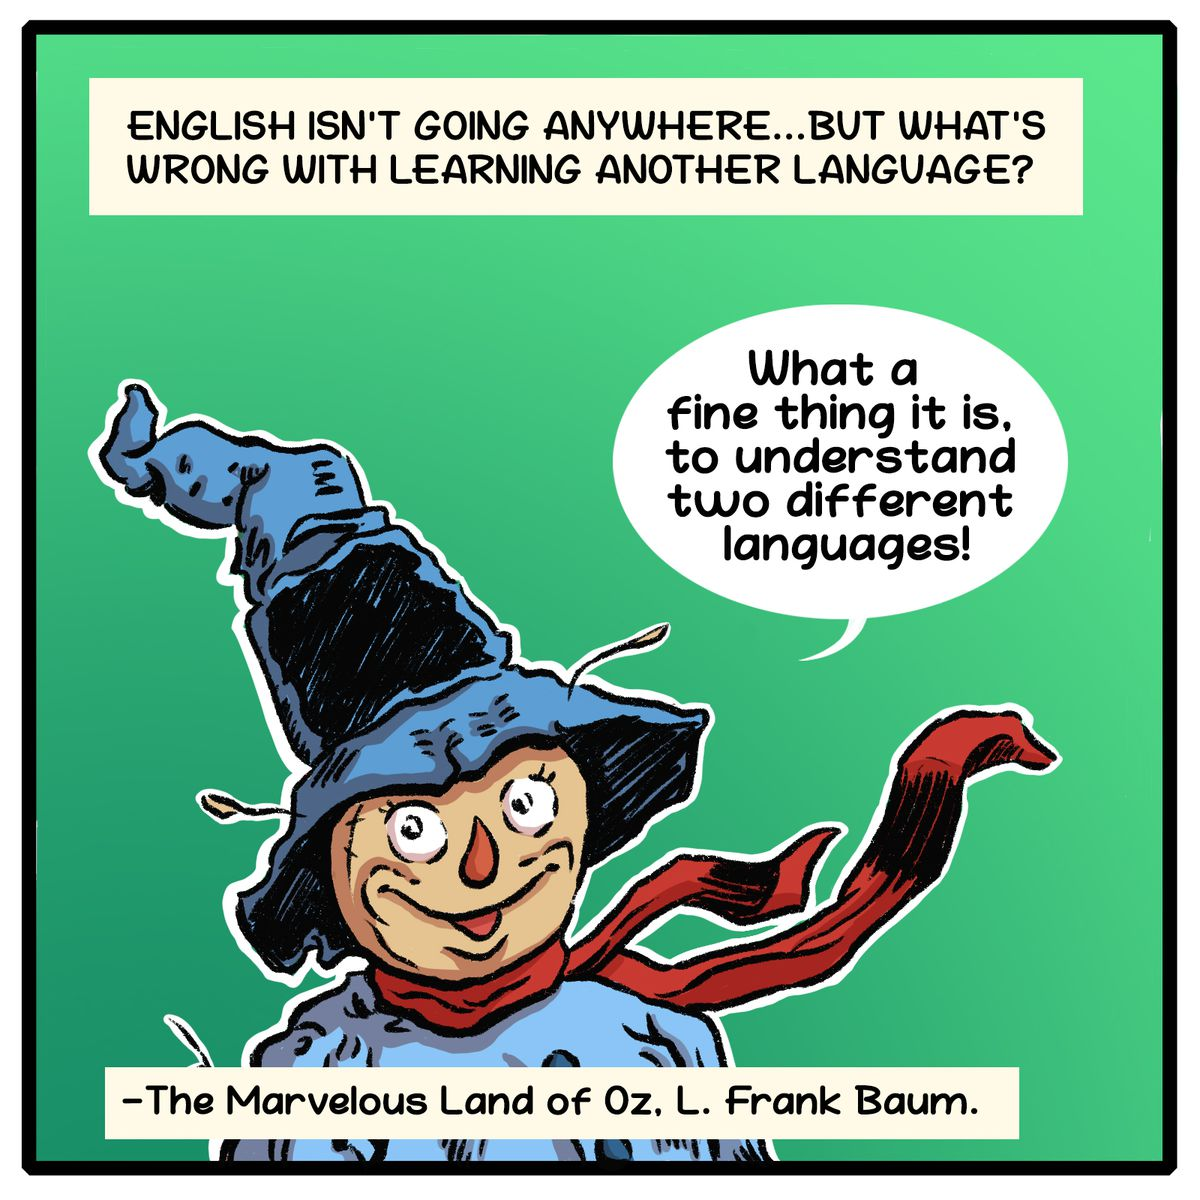 """English isn't going anywhere...but what's wrong with learning another language? """"What a fine thing it is to understand two different languages!"""" —The Marvelous Land of Oz, L. Frank Baum"""